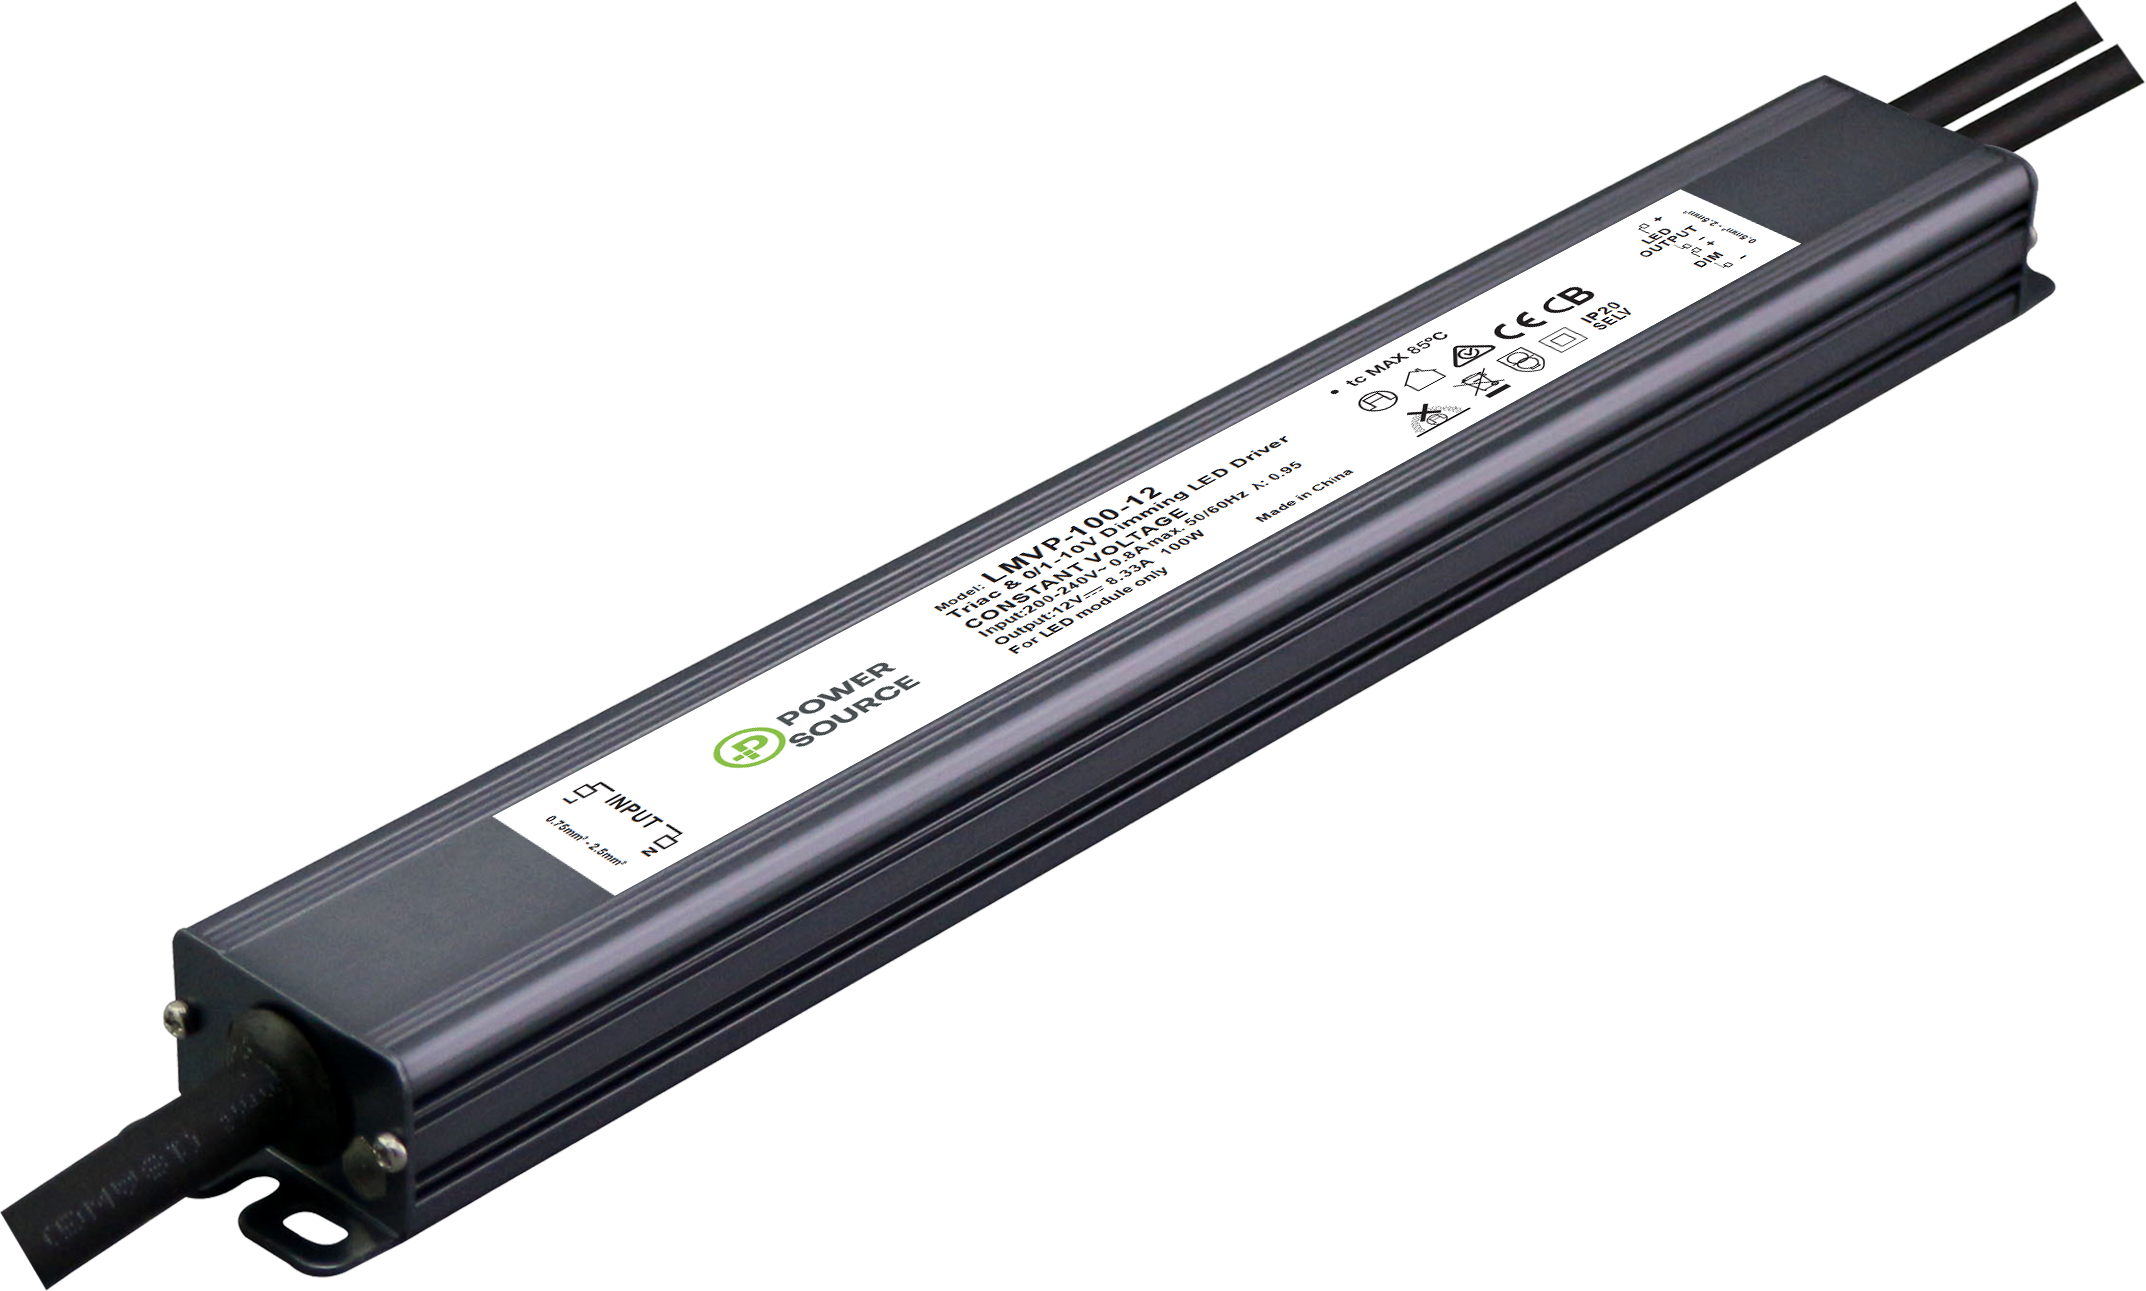 POWER SOURCE LMVP-100 LINEAR LED DRIVER